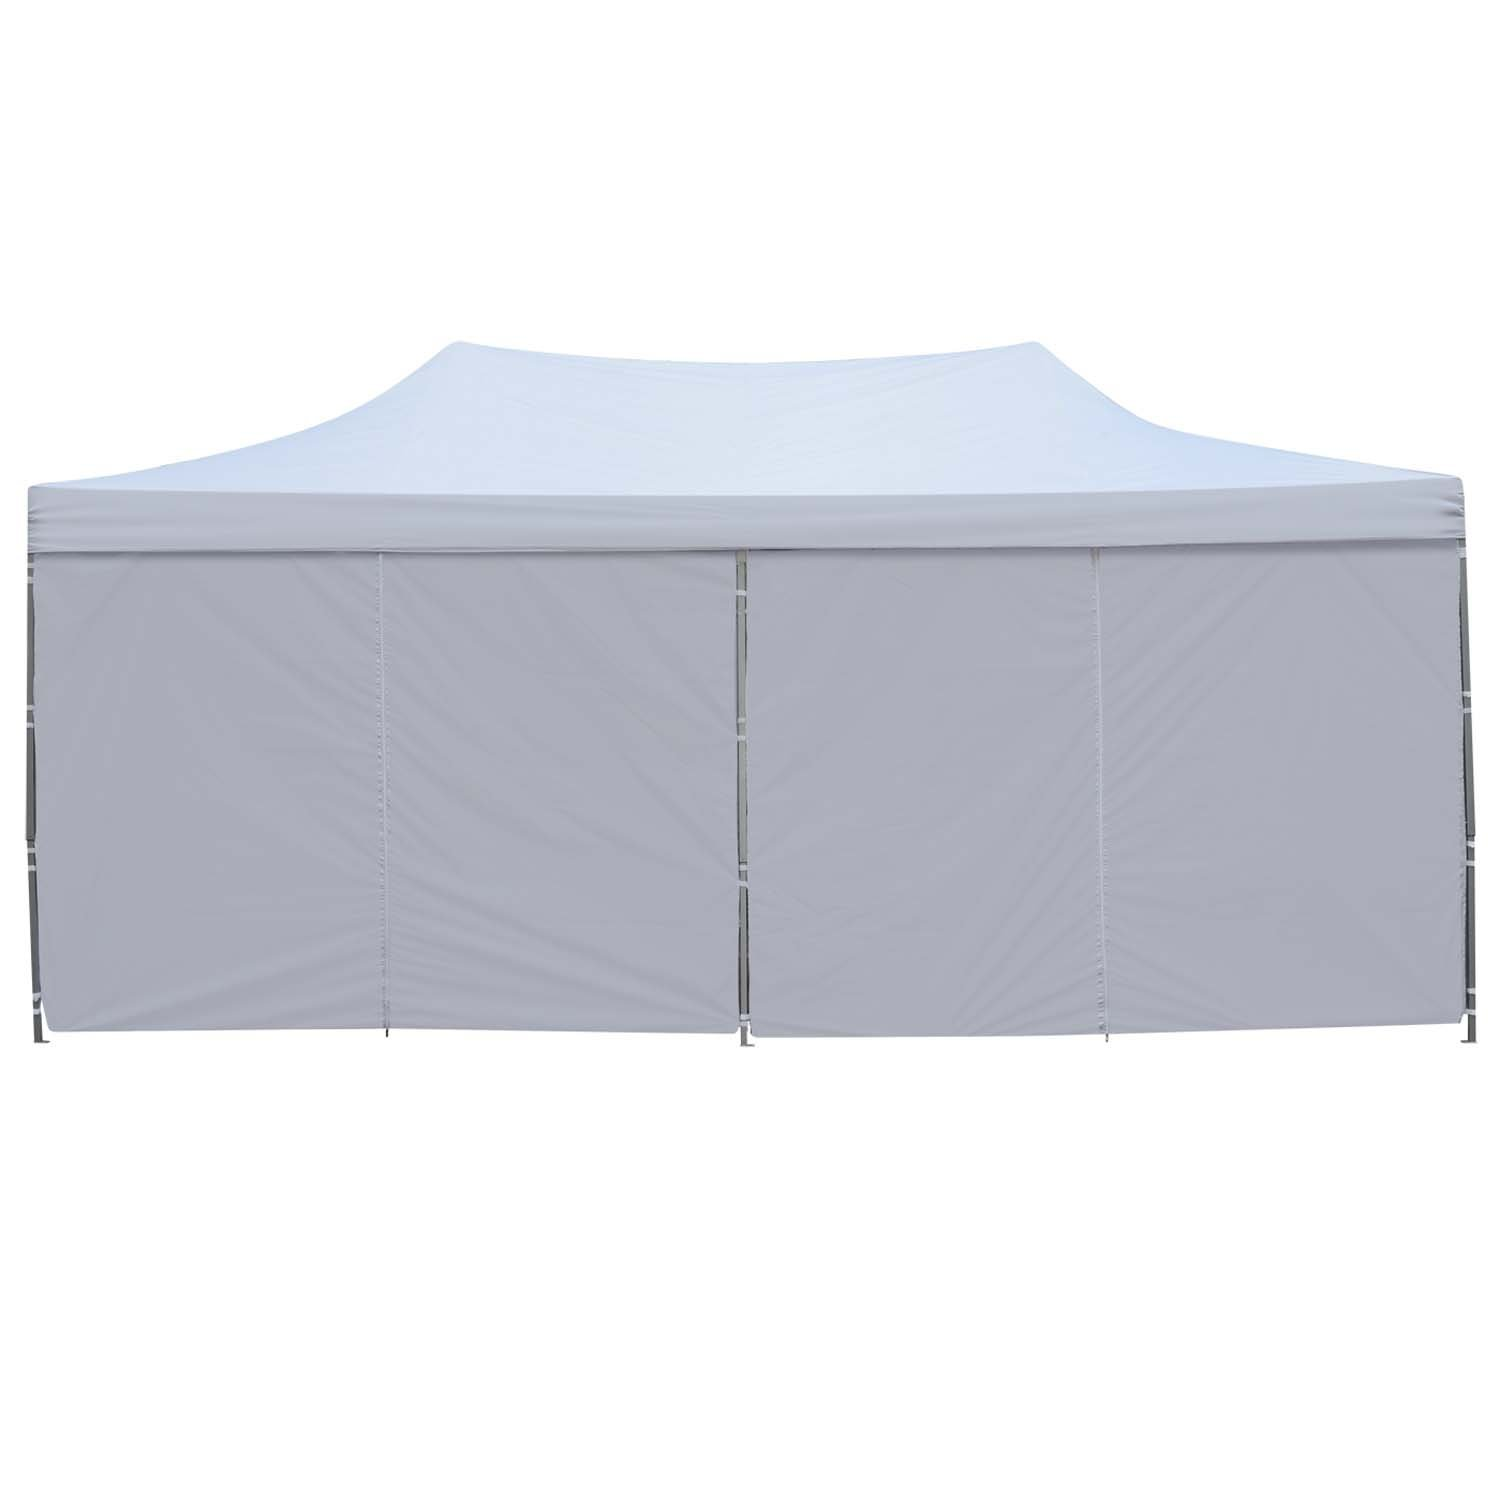 Outdoor Basic 10x20 Ft Pop up Canopy Party Wedding Gazebo Tent Shelter with Removable Side Walls White by Outdoor Basic (Image #4)